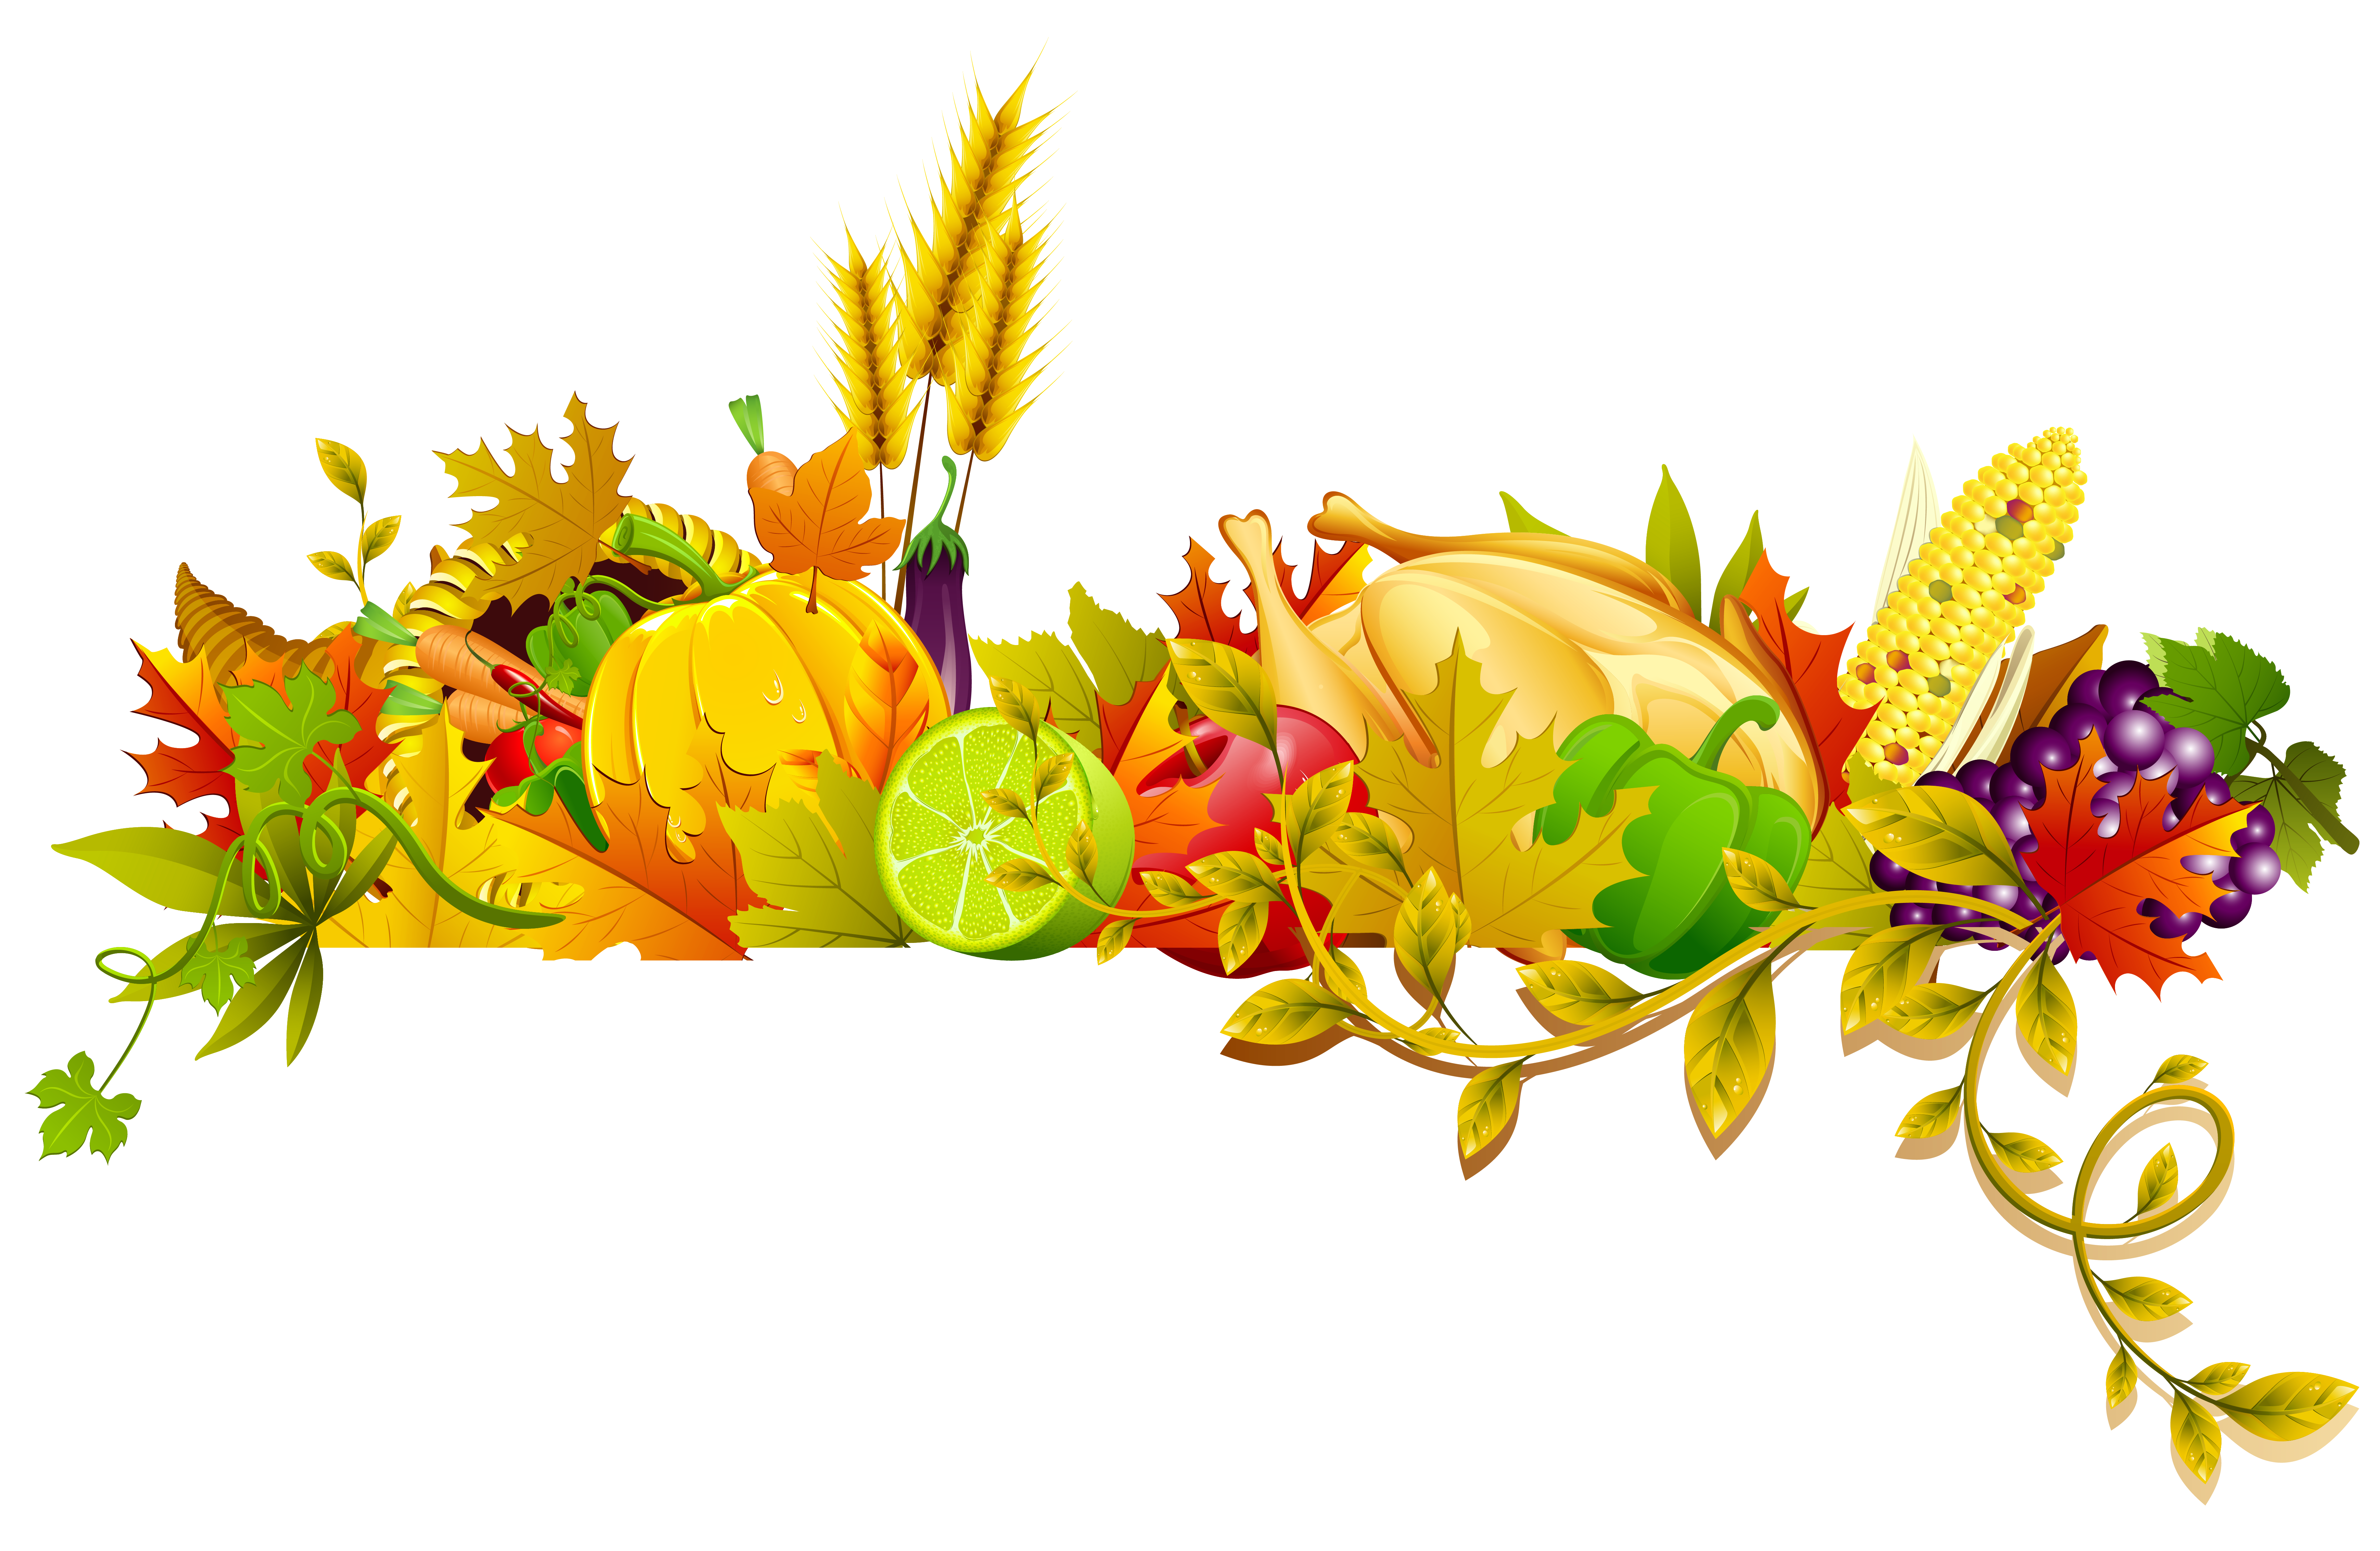 Thanksgiving png. Transparent decor clipart gallery